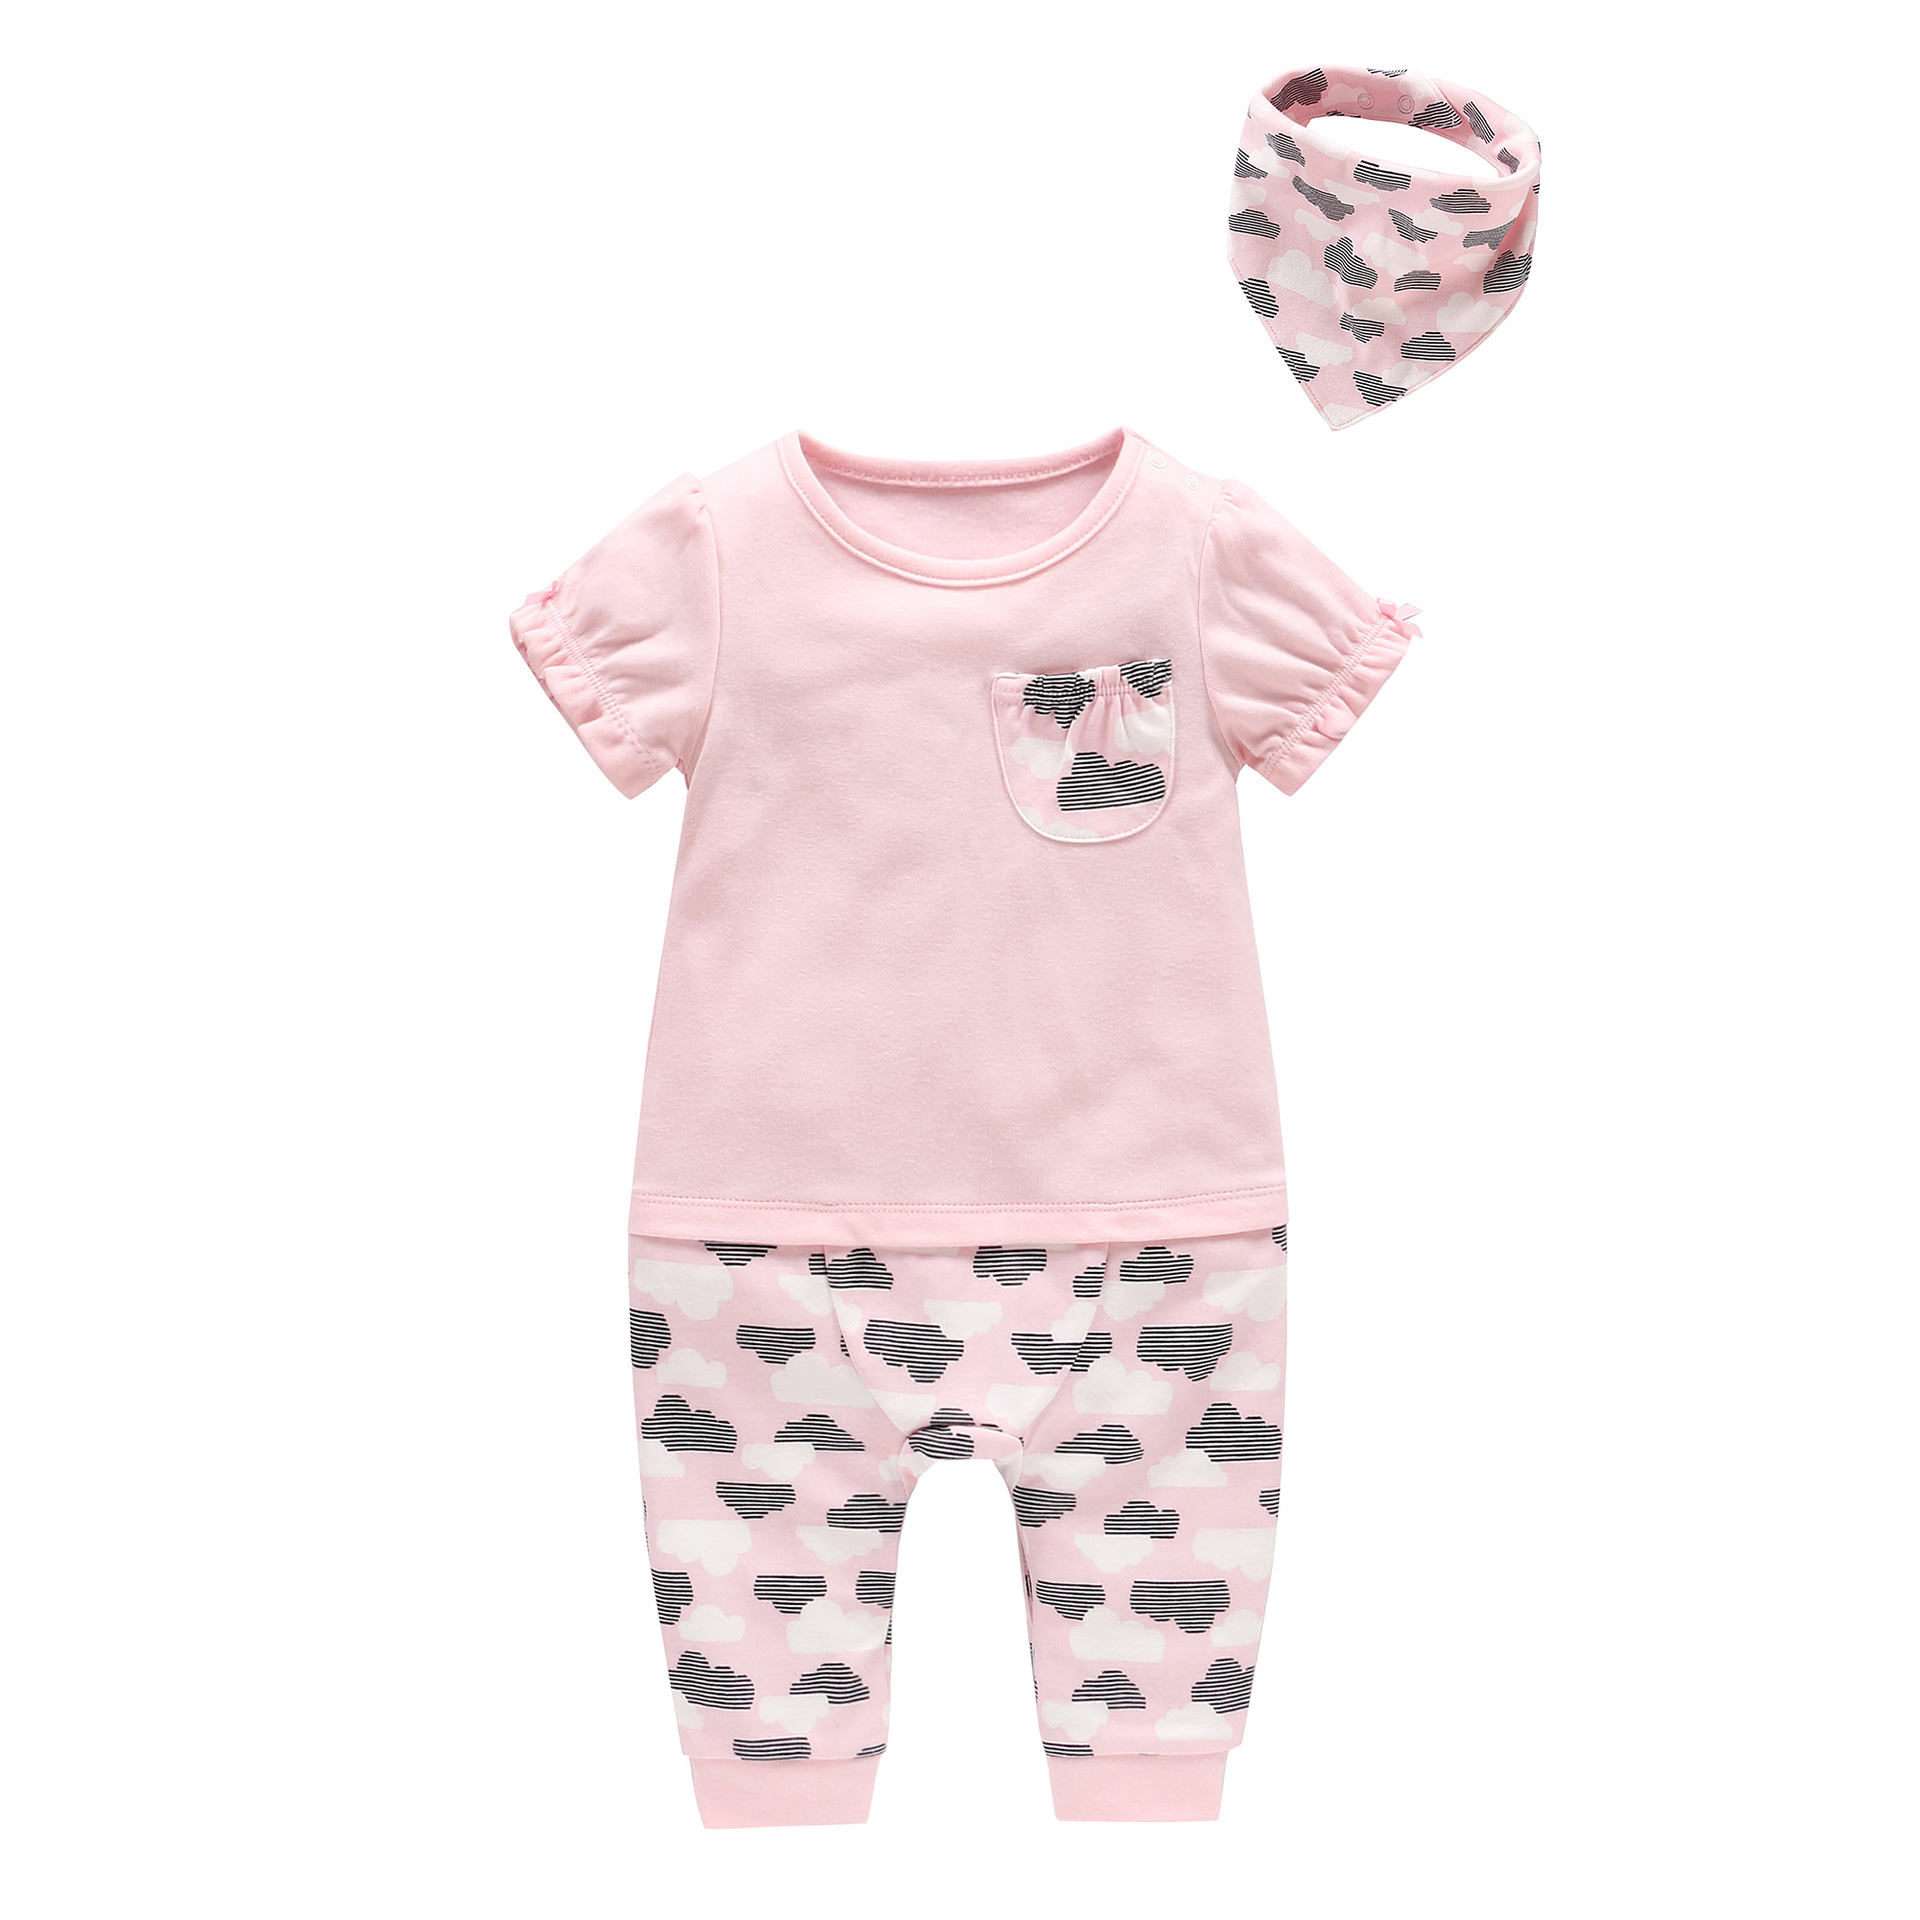 2018 Baby Girl Summer Clothing Sets Baby Cloud Printed Pocket Romper+bibs 2pcs Set Infant Baby Cotton Outfits Kid Clothes new baby girl clothing sets infant easter romper tutu dress 2pcs set black girls rompers first birthday costumes festival sets